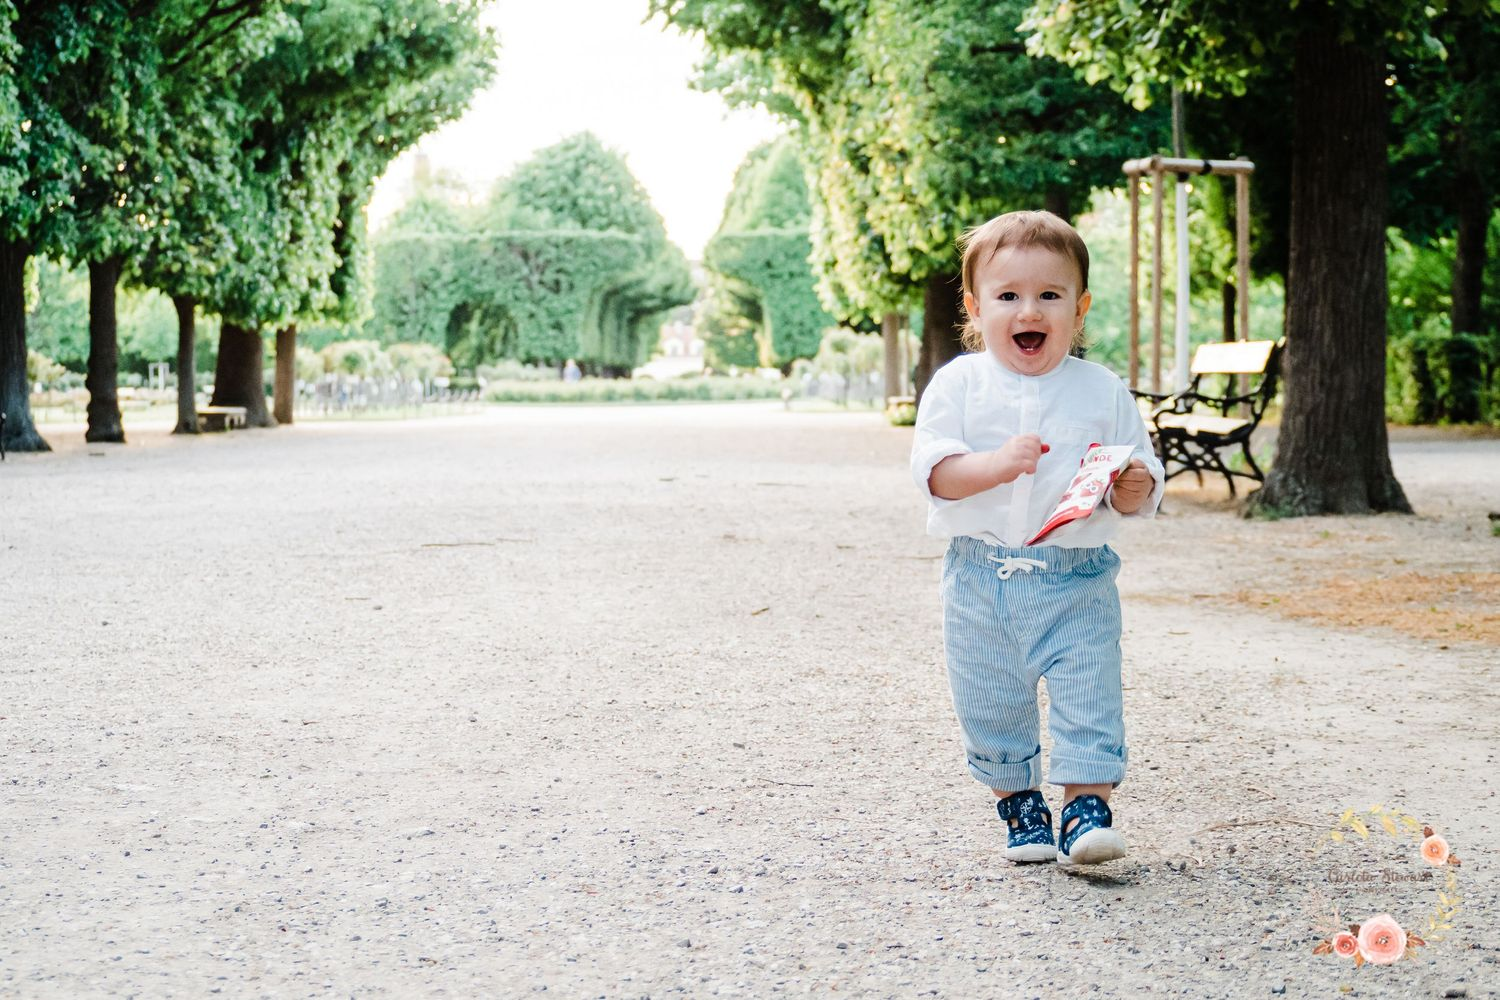 1 year old toddler running thru the Schönbrunn gardens in Vienna wearing a white top and blue trousers.